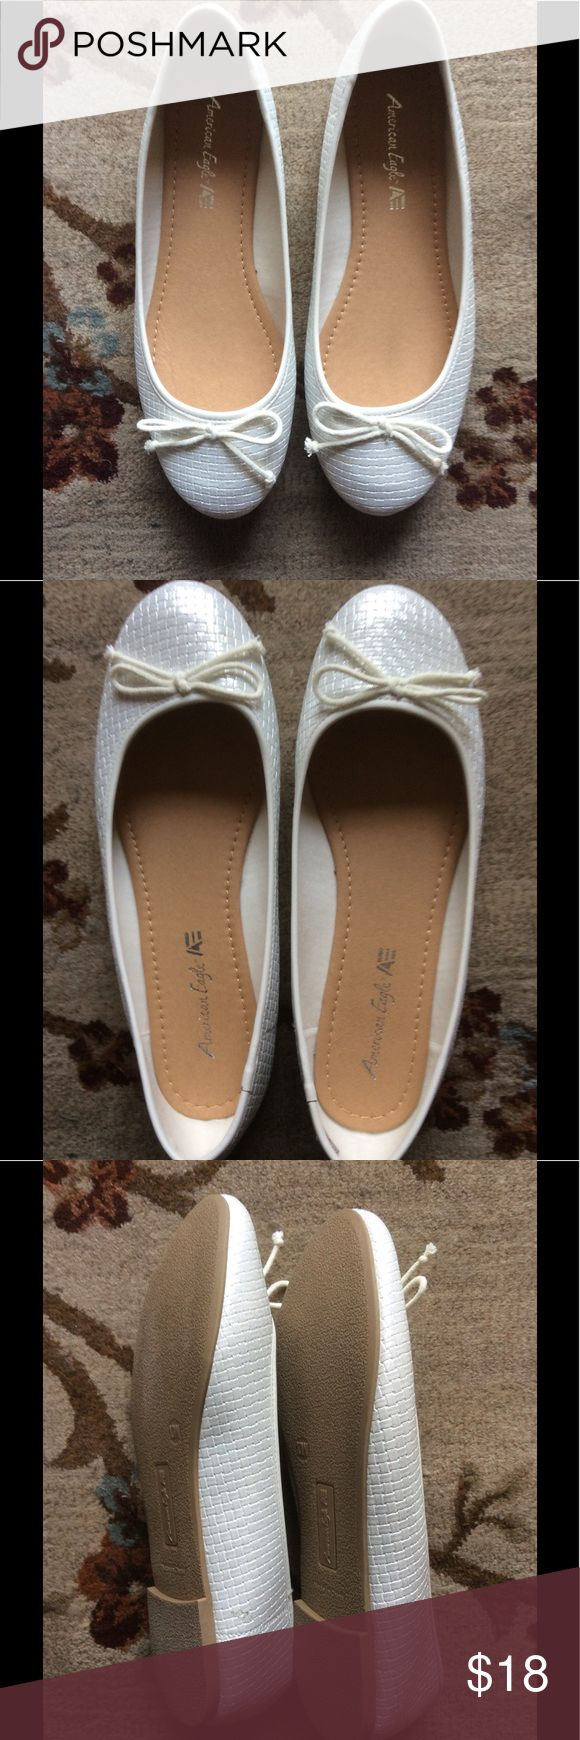 American Eagle White Ballet Flats 10W These are a pair of cute American Eagle White Ballet Flats with a thin bow. Size 10W. About 4 inches wide in toe area. Used only once! Pair them with a cute skirt or pants. American Eagle by Payless Shoes Flats & Loafers